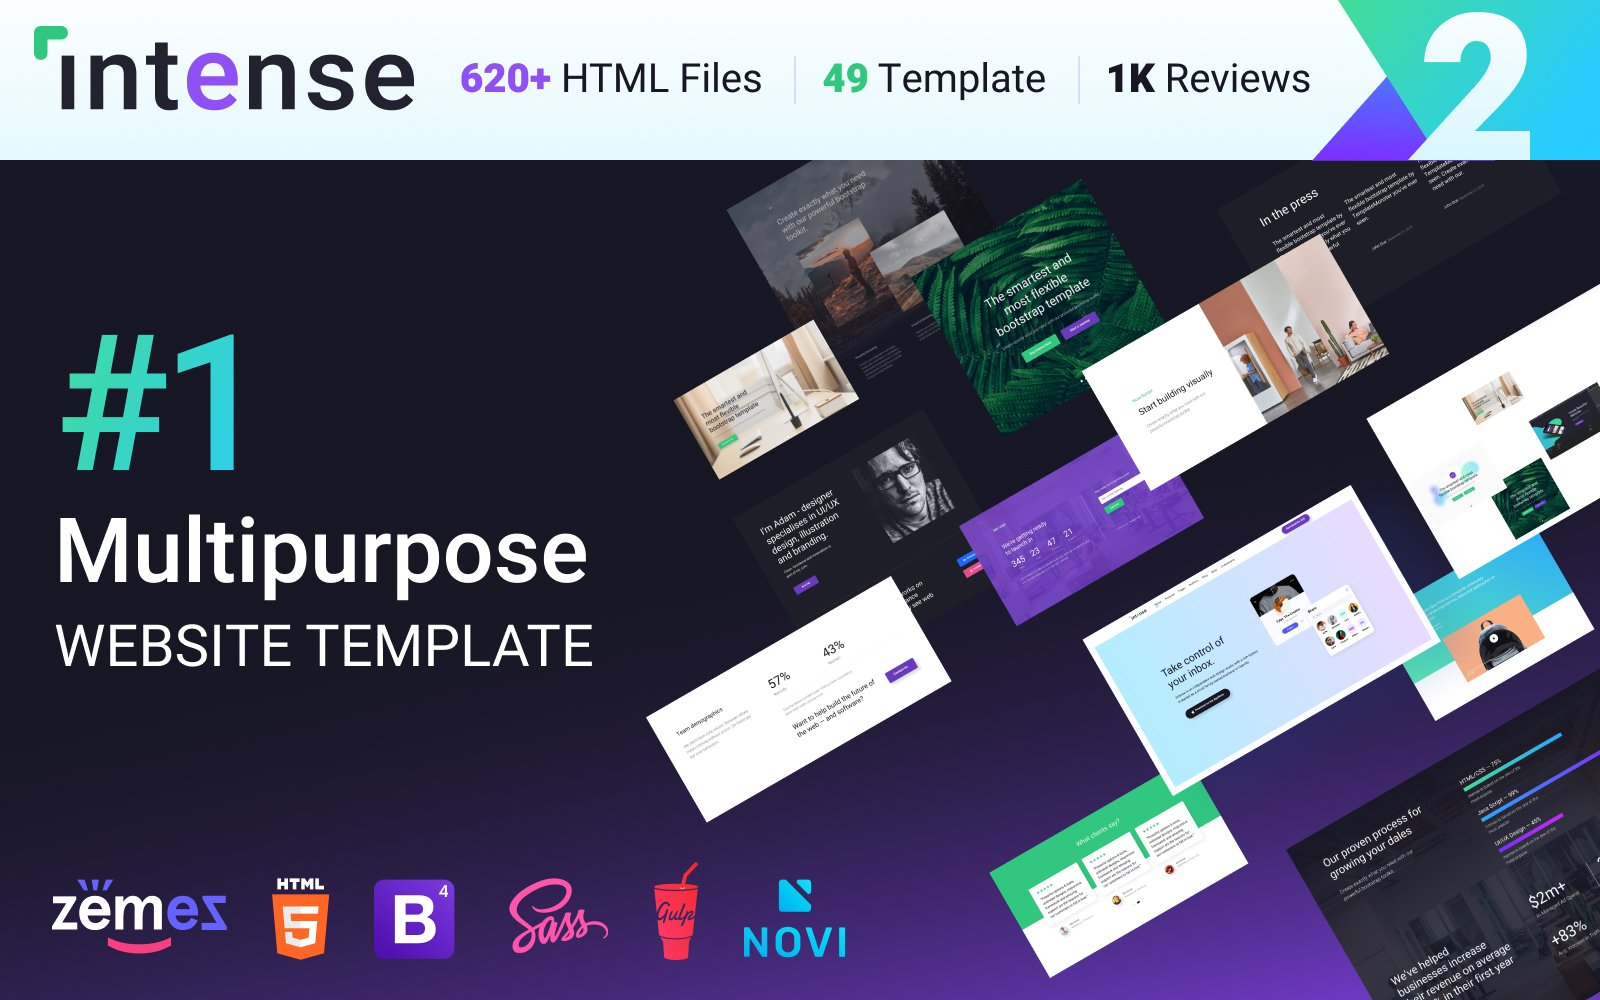 Multipurpose Website Template Intense - #1 HTML Bootstrap Website Template - screenshot